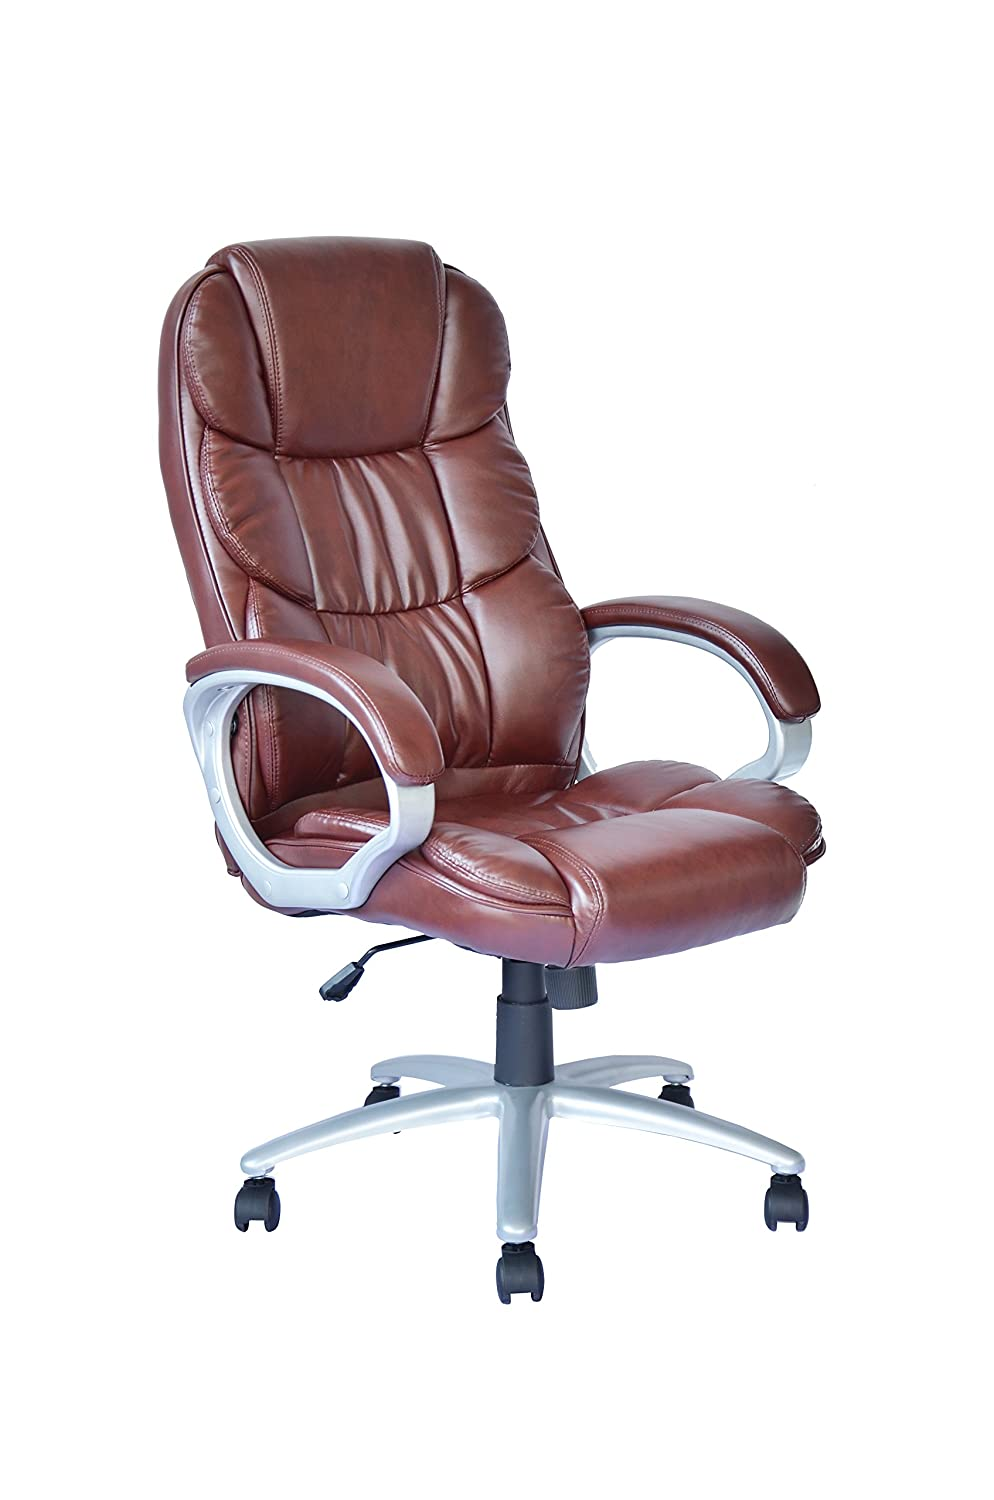 Cool Ergonomic Office Chair Desk Chair Pu Leather Computer Chair Task Rolling Swivel Executive Chair With Lumbar Support Armrest For Womenmen Brown Bralicious Painted Fabric Chair Ideas Braliciousco